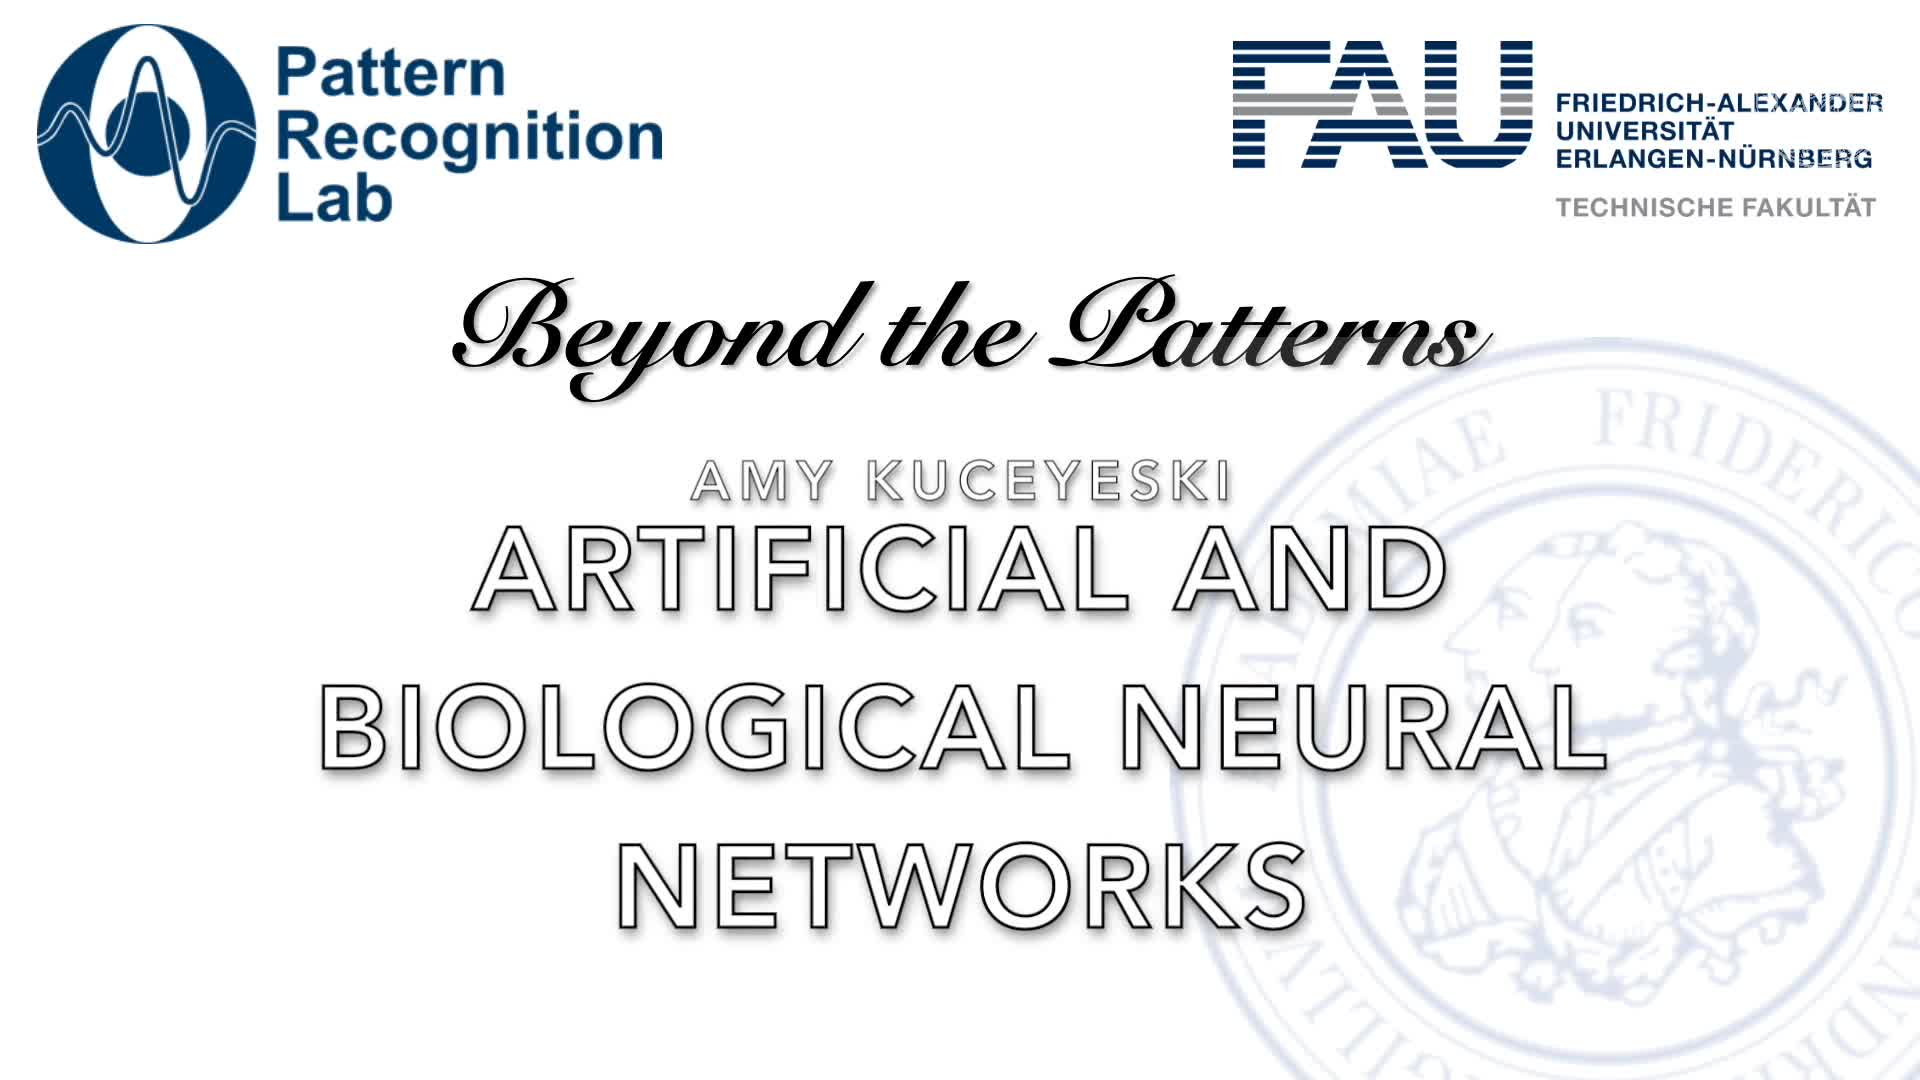 Beyond the Patterns - Amy Kuceyeski - Biological and Artificial Neural Networks preview image